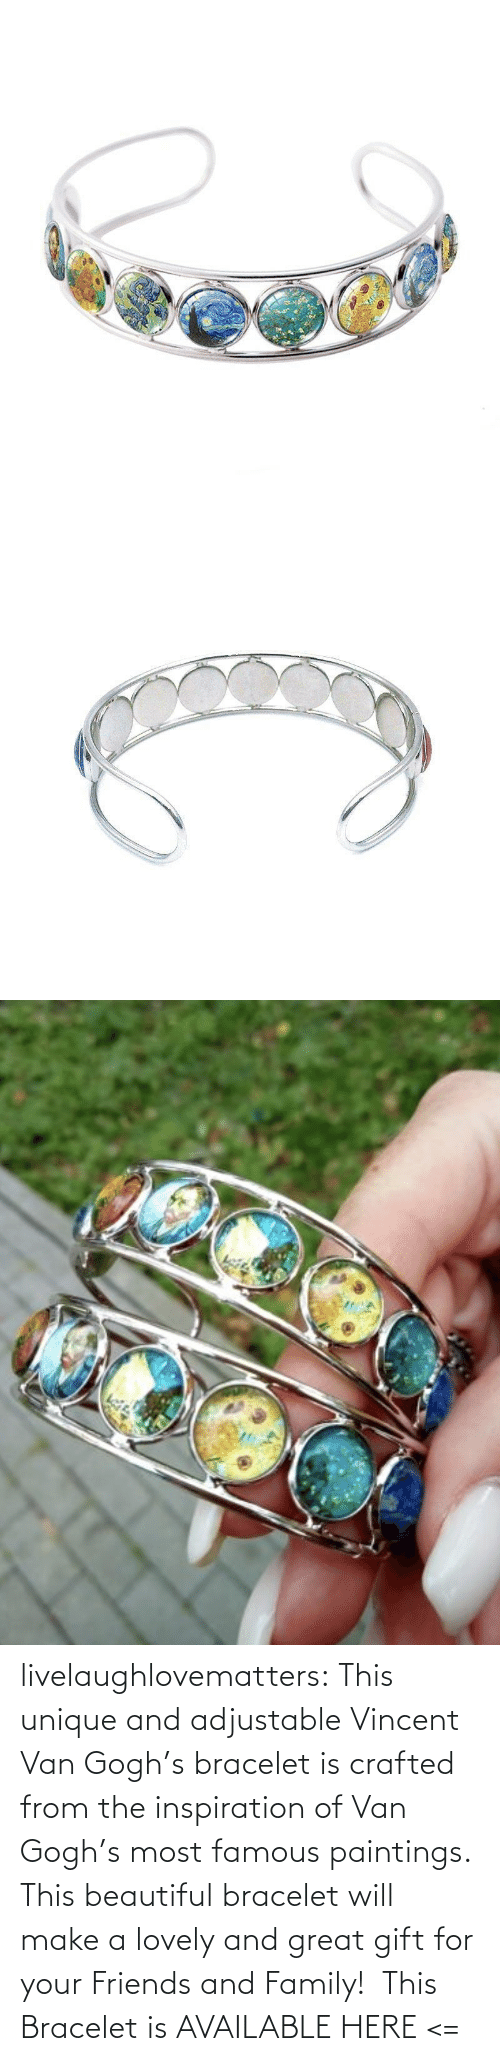 Inspiration: livelaughlovematters: This unique and adjustable Vincent Van Gogh's bracelet is crafted from the inspiration of Van Gogh's most famous paintings. This beautiful bracelet will make a lovely and great gift for your Friends and Family!  This Bracelet is AVAILABLE HERE <=